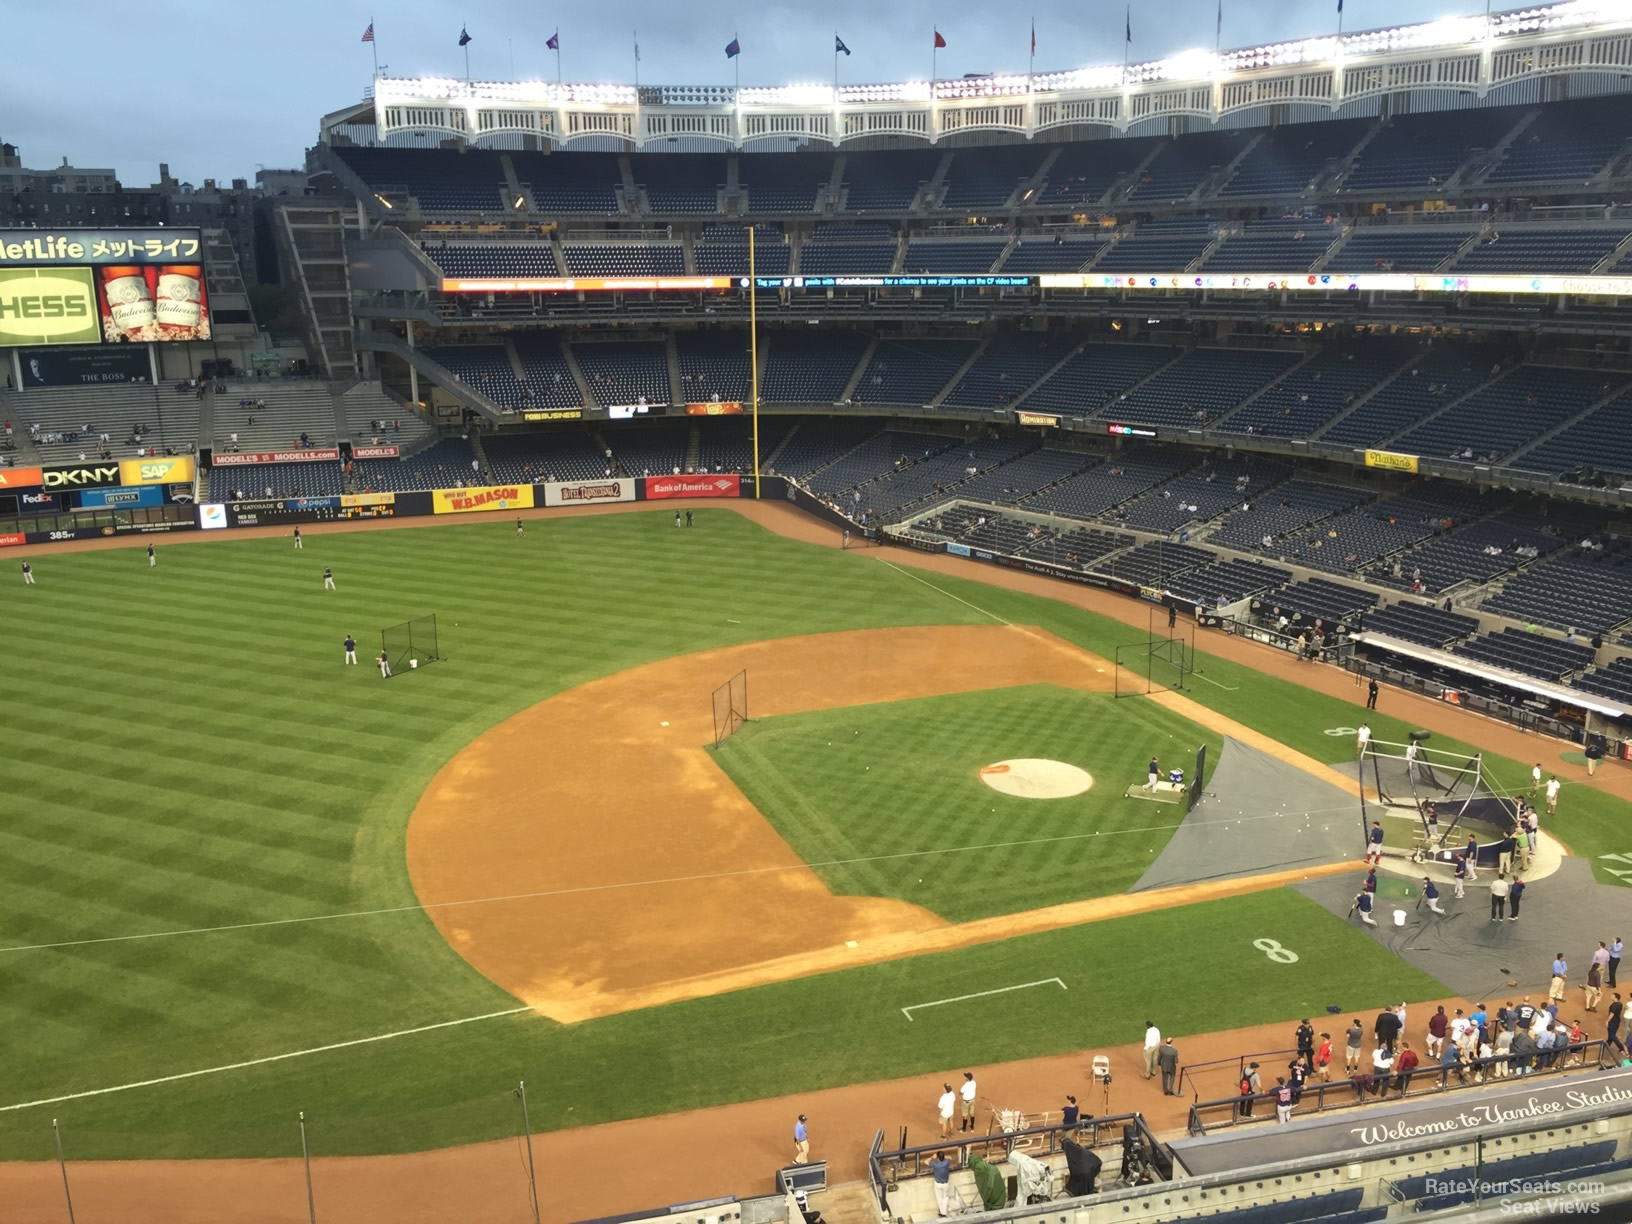 New York Yankees Seat View for Yankee Stadium Section 326, Row 6